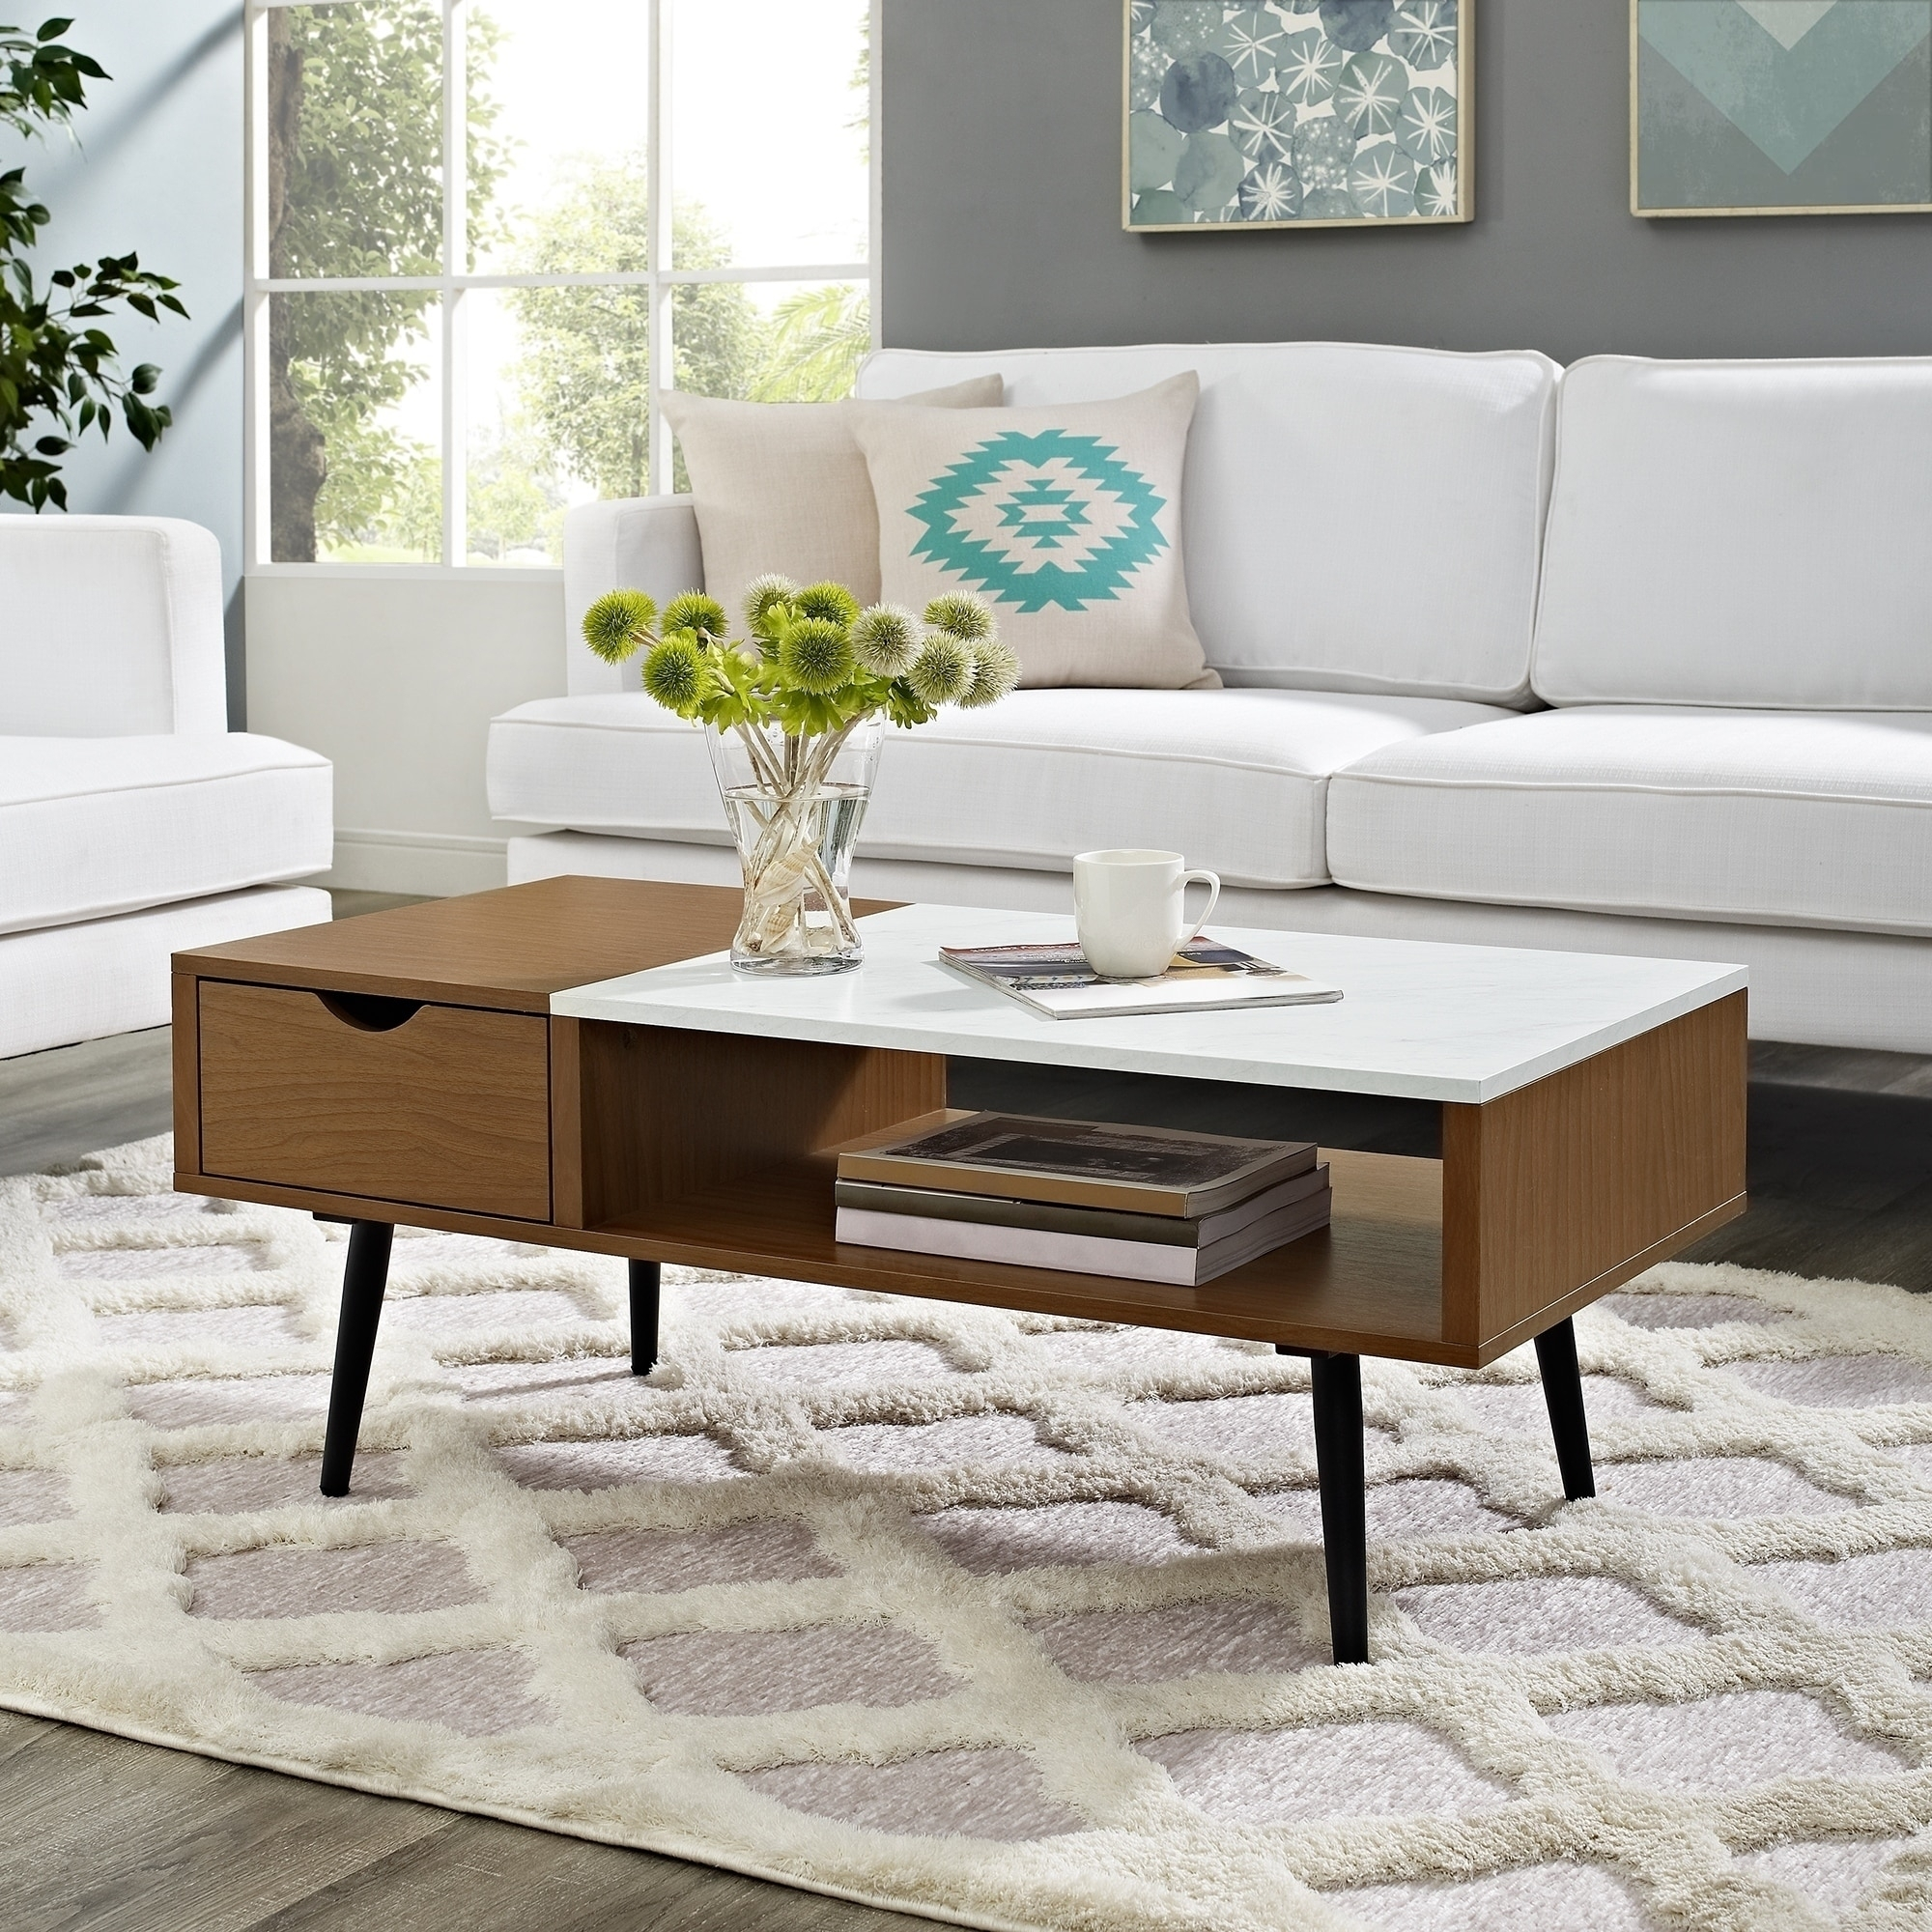 "Shop 42"" Mid-Century Modern Wood And Faux Marble Coffee Table - 42 X with regard to Mid-Century Modern Marble Coffee Tables (Image 28 of 30)"